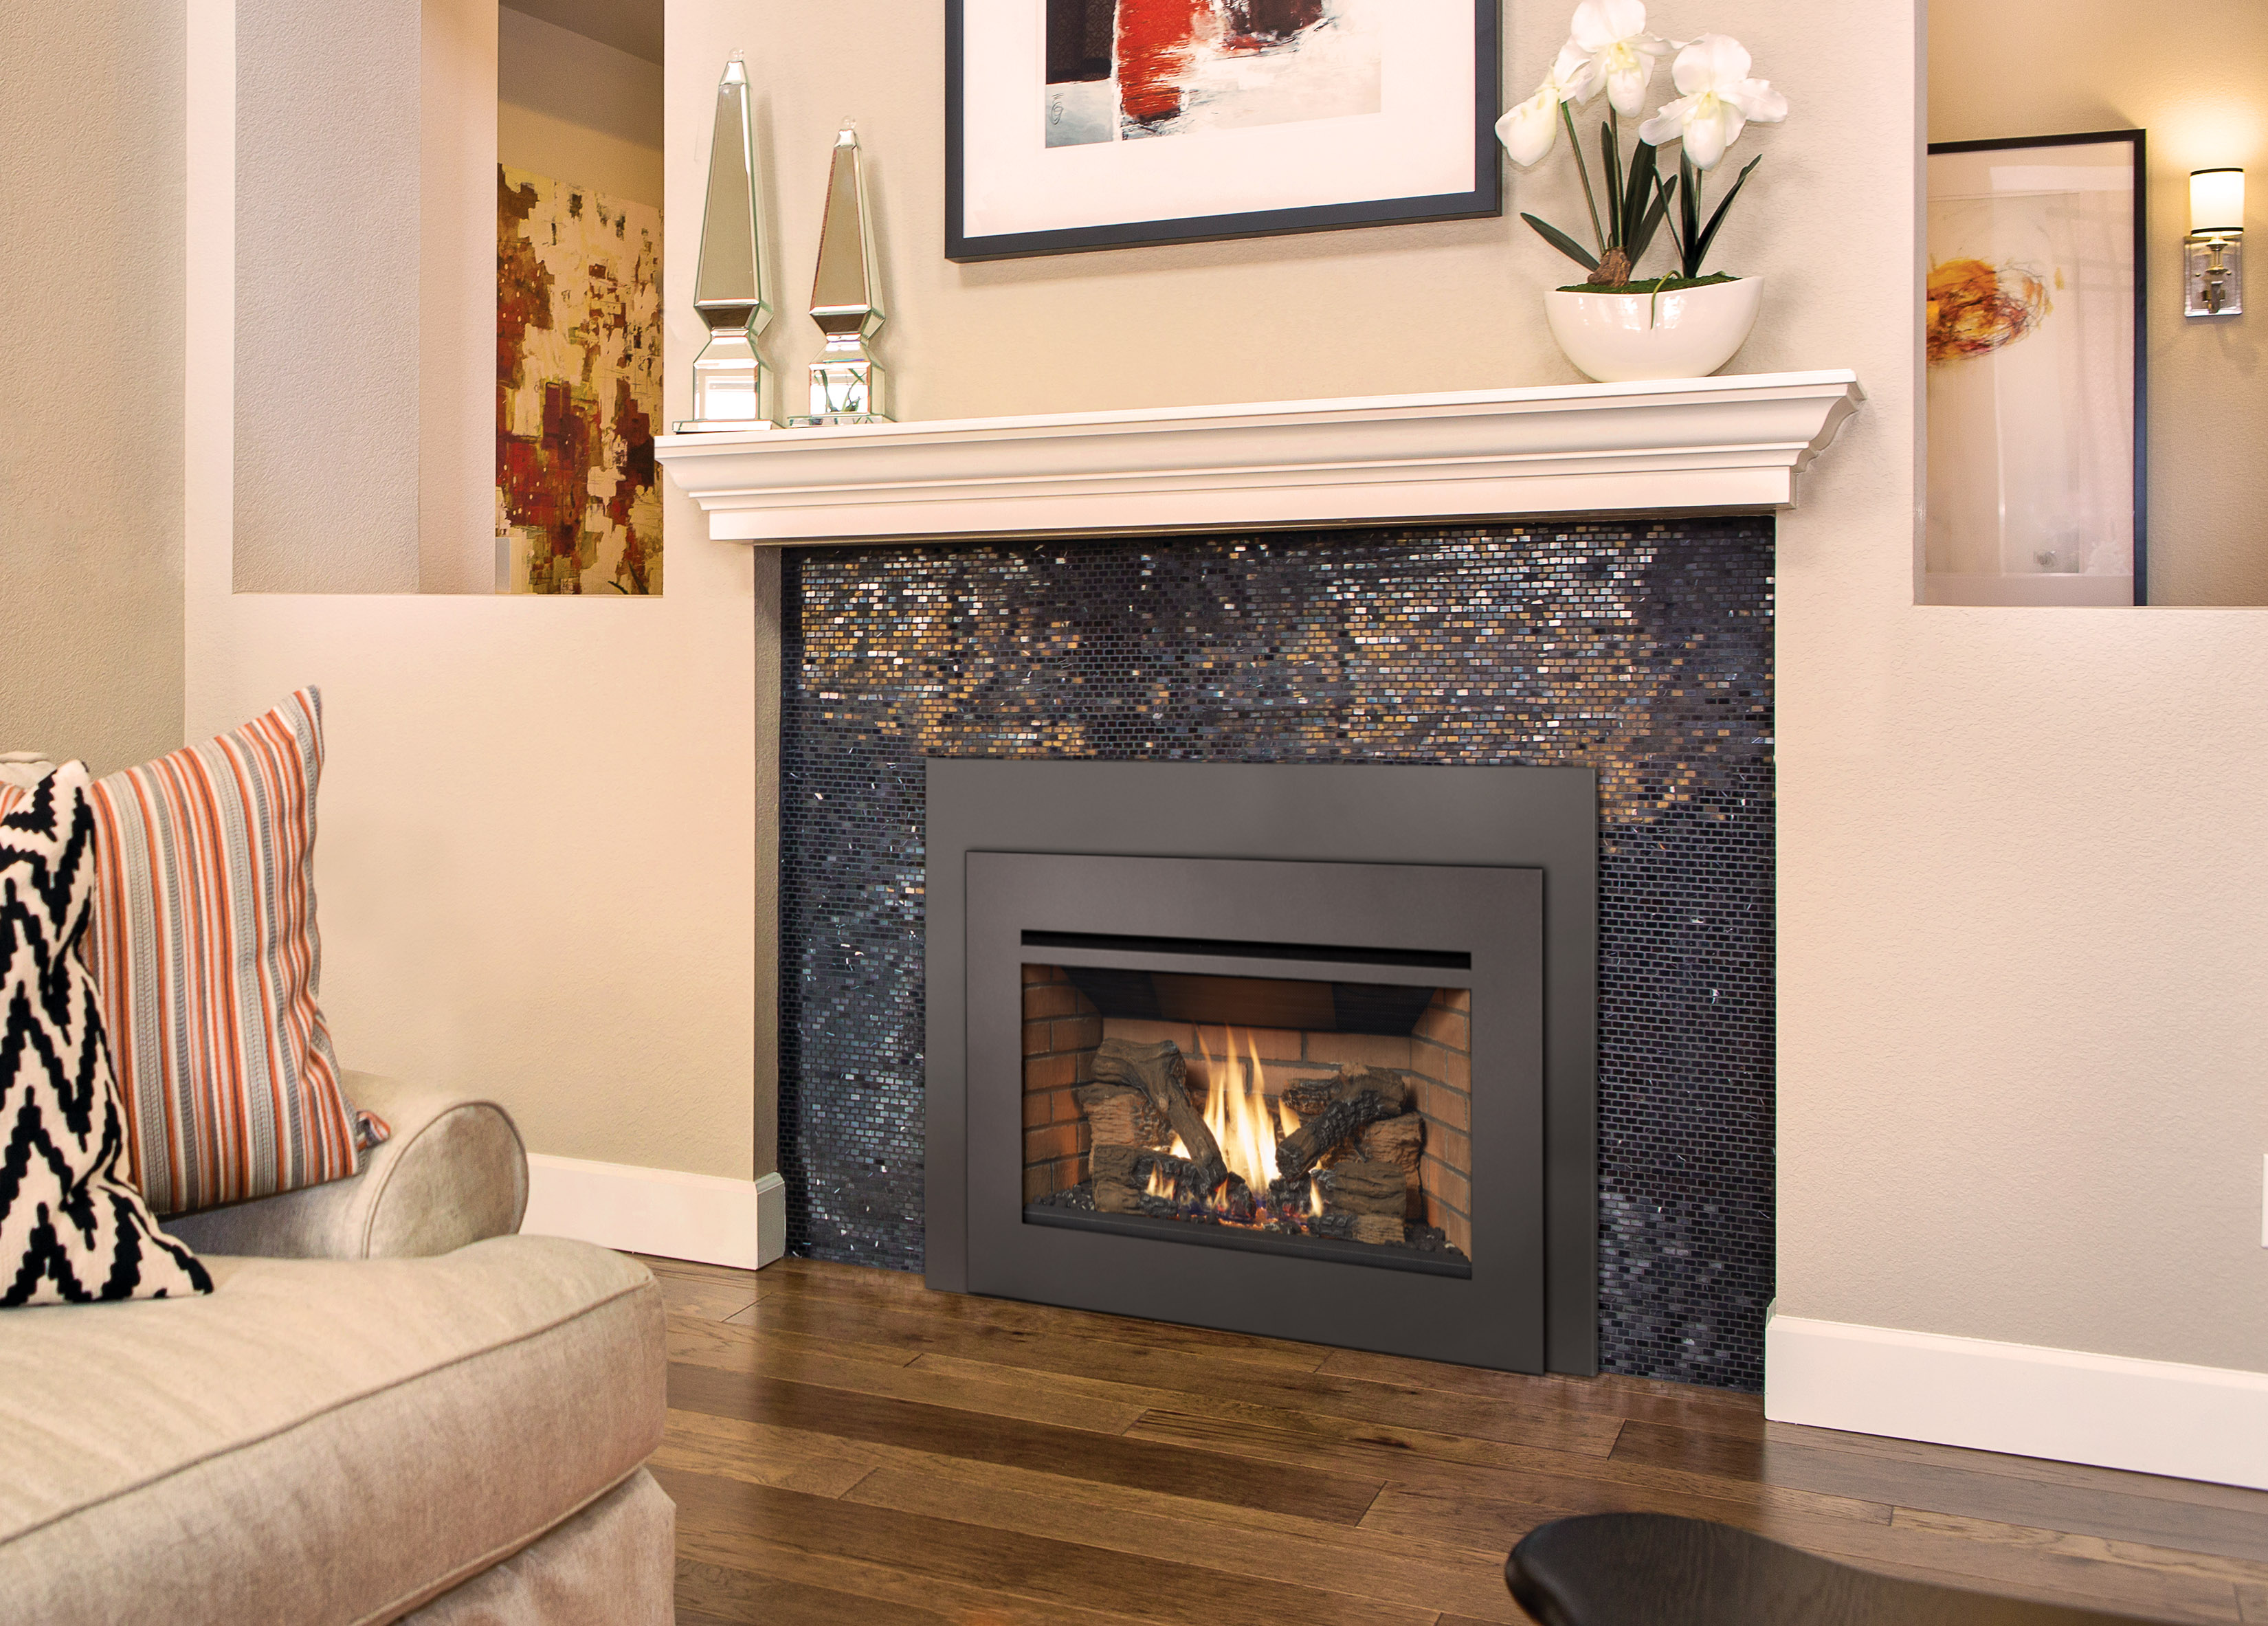 Avalon Gas Fireplace Inserts Reliable Performance Reasonably Priced Introducing The Radiant